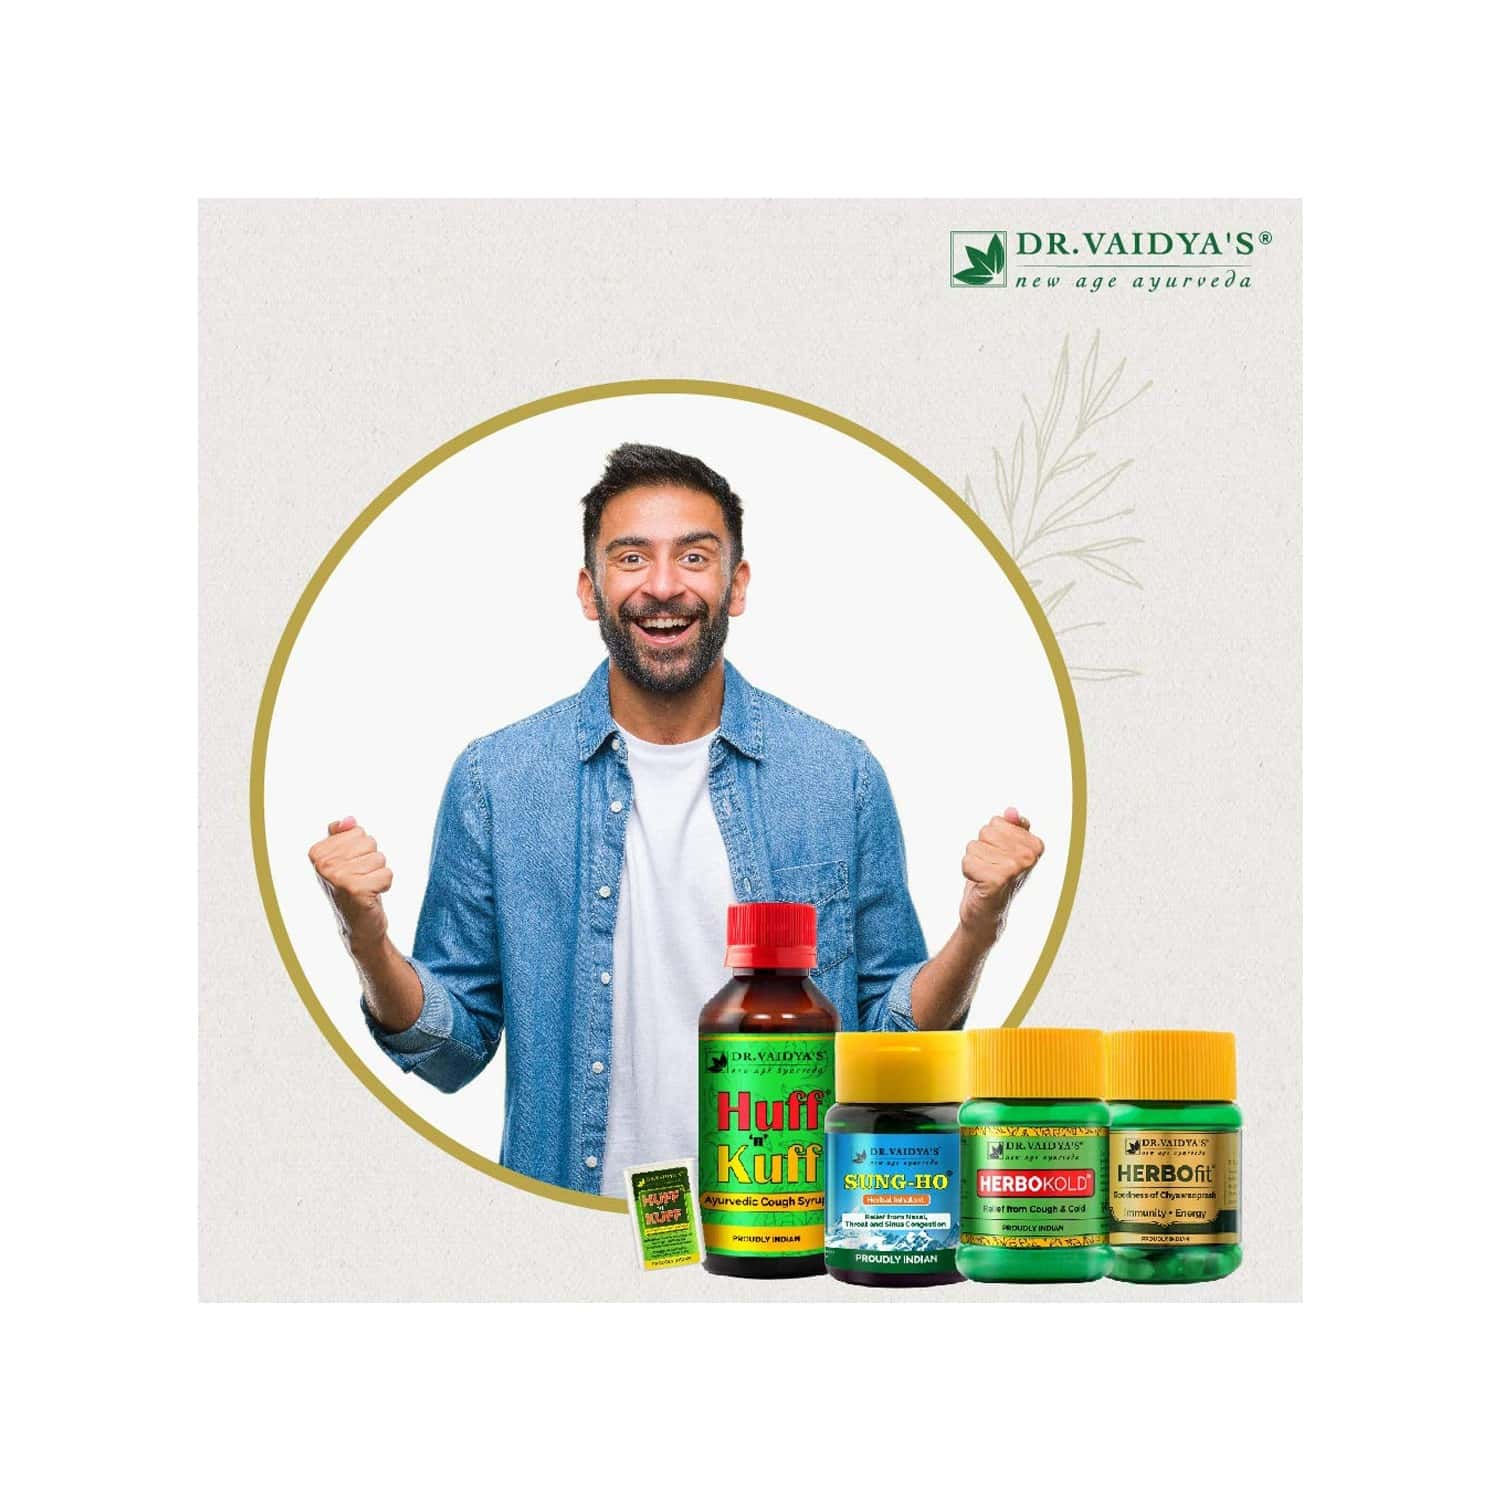 Dr. Vaidya's Viral Immunity Pack | Boost Immunity & Stay Fit Naturally | Herbofit (30 Capsules X 1) Sung-ho (10 Gms X 1) Huff N Kuff Syrup (100ml X 1) Huff N Kuff Lozenges (50 Pills X 1) Herbokold (50 Gms X 1)